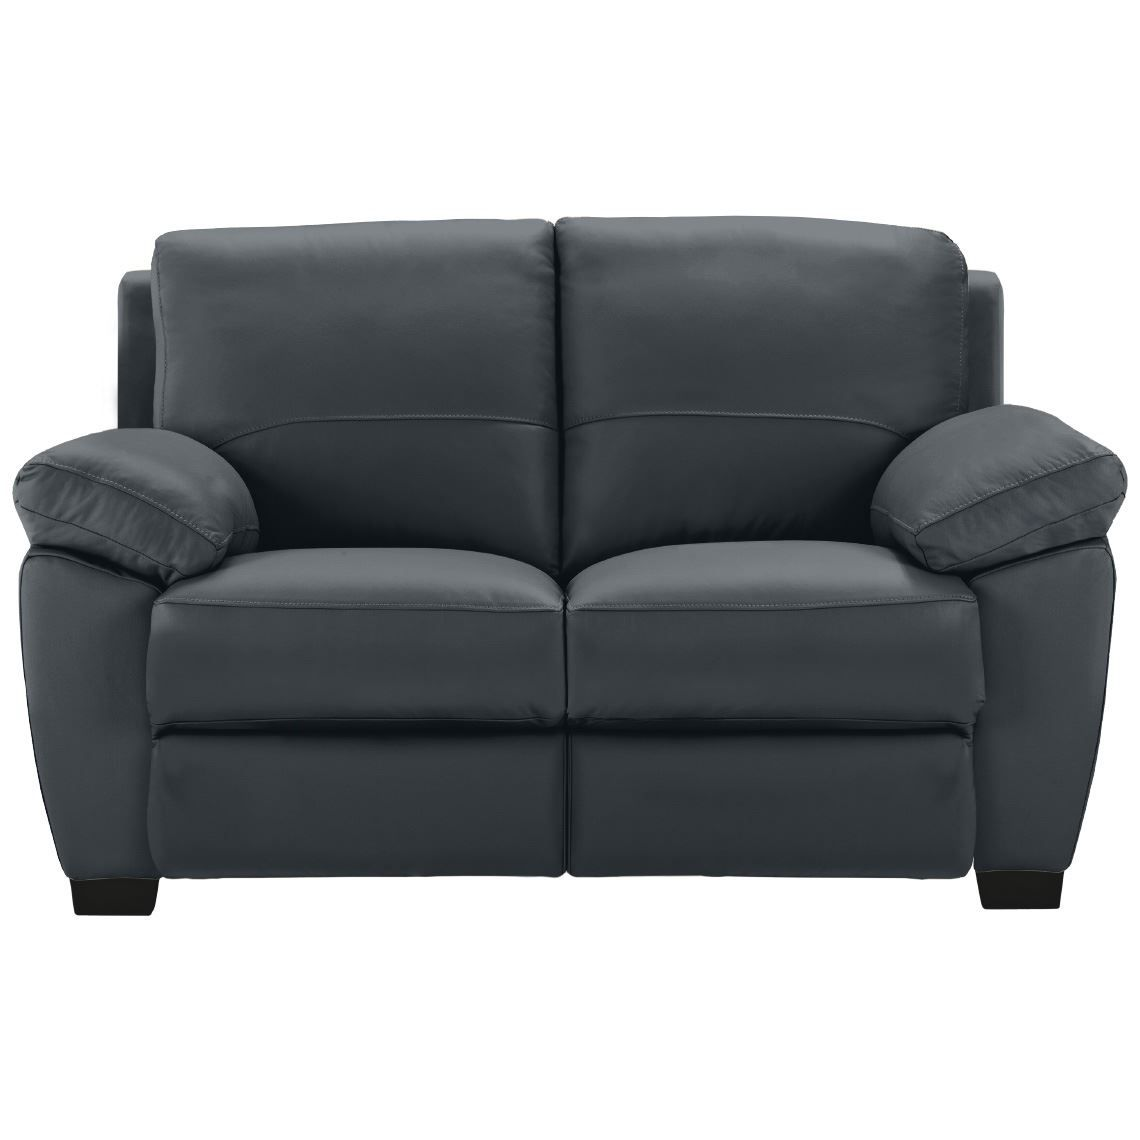 Lucas Recliner 2 Seat Sofa Charcoal With Images Leather Sofa Reclining Sofa Leather Seat